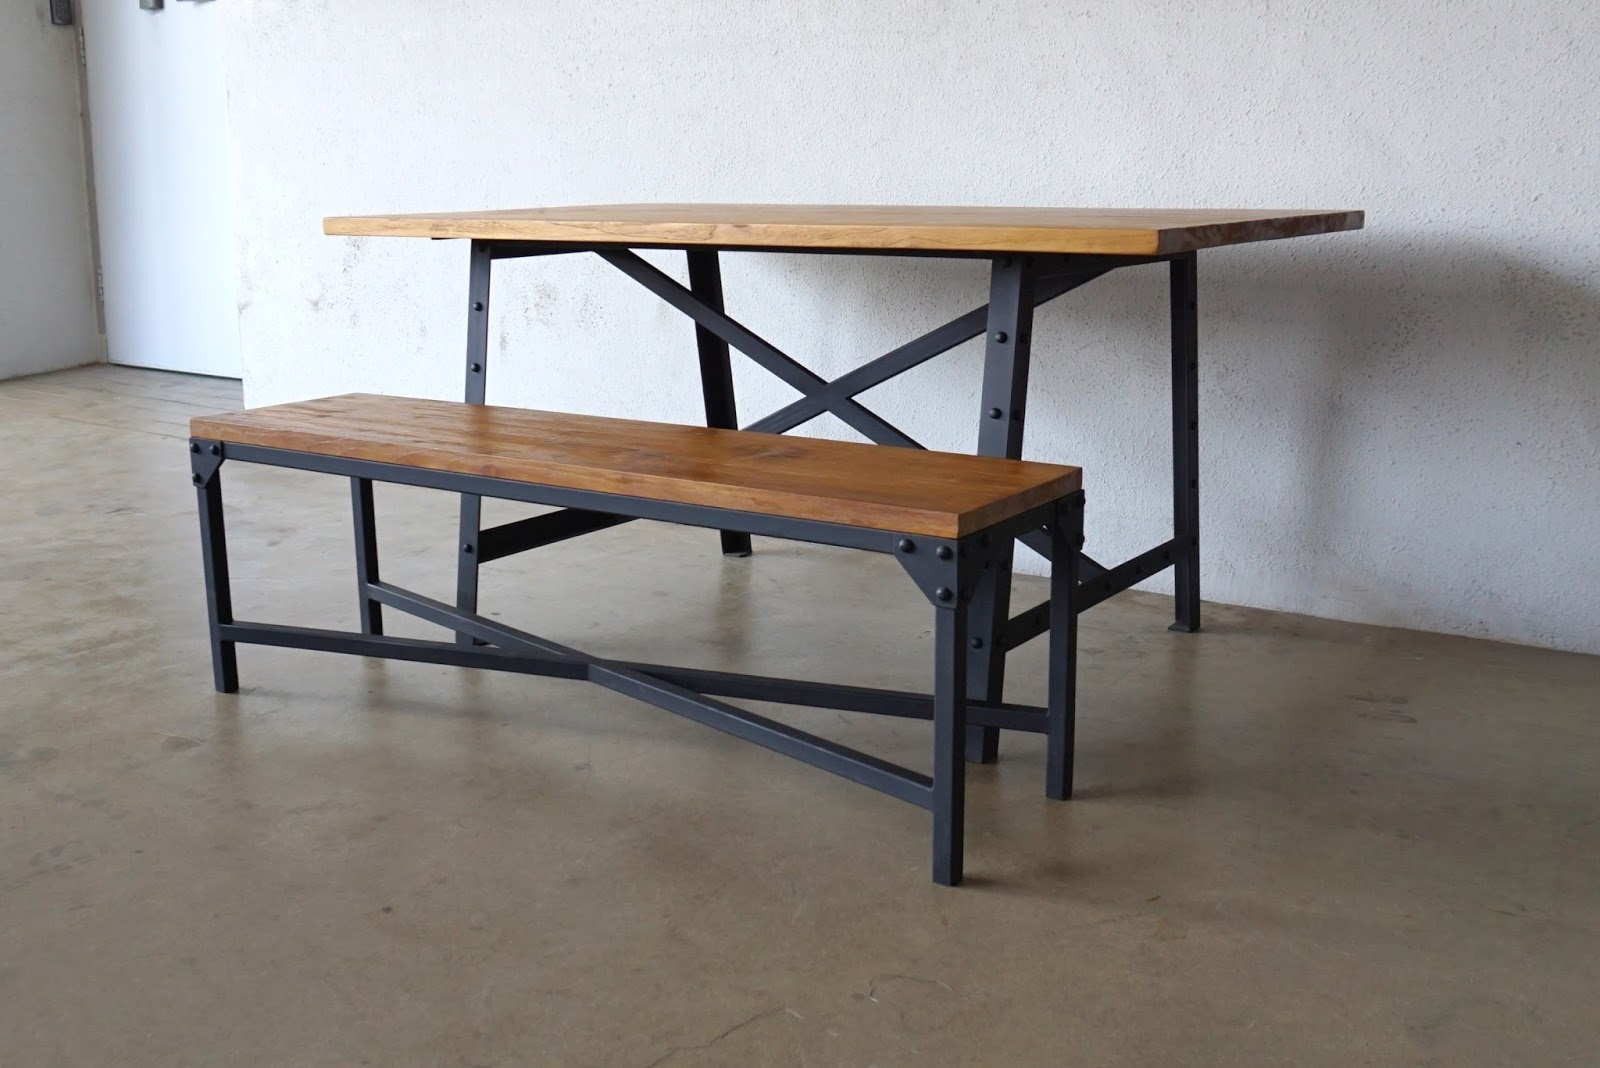 INDUSTRIAL FURNITURE II DINING TABLE